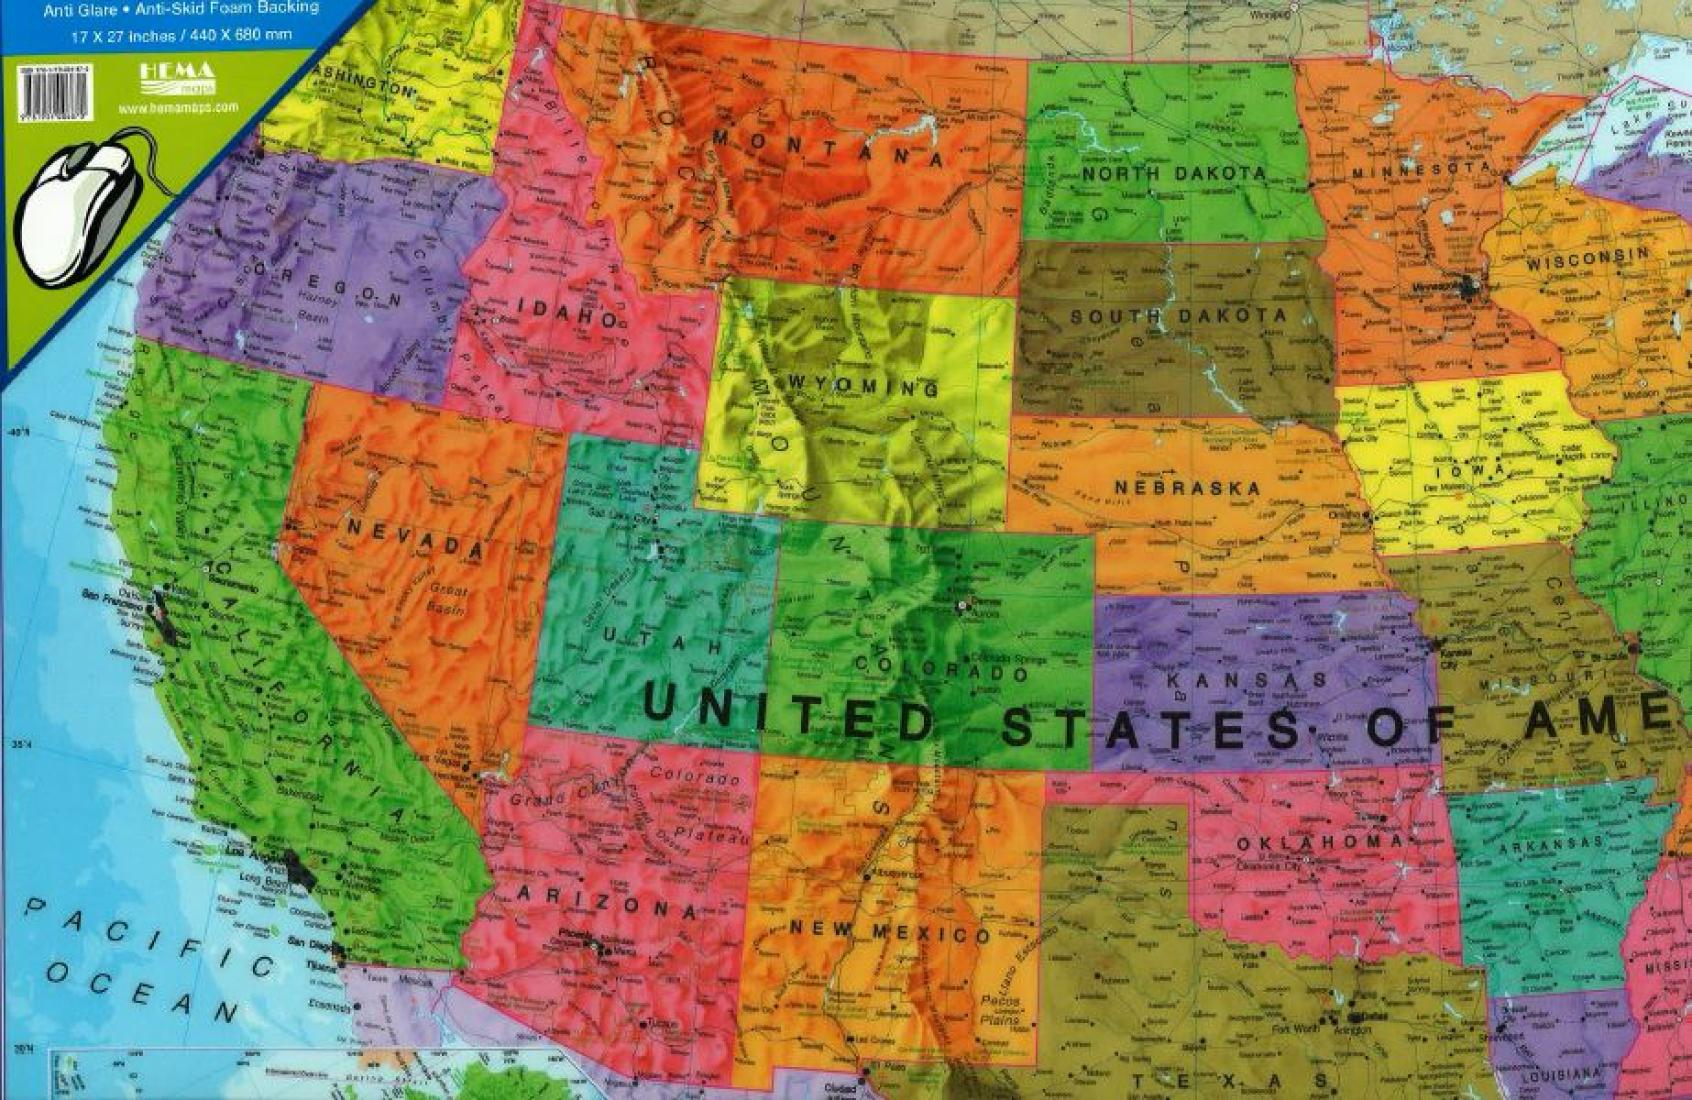 United states political desk pad by maps international ltd gumiabroncs Gallery